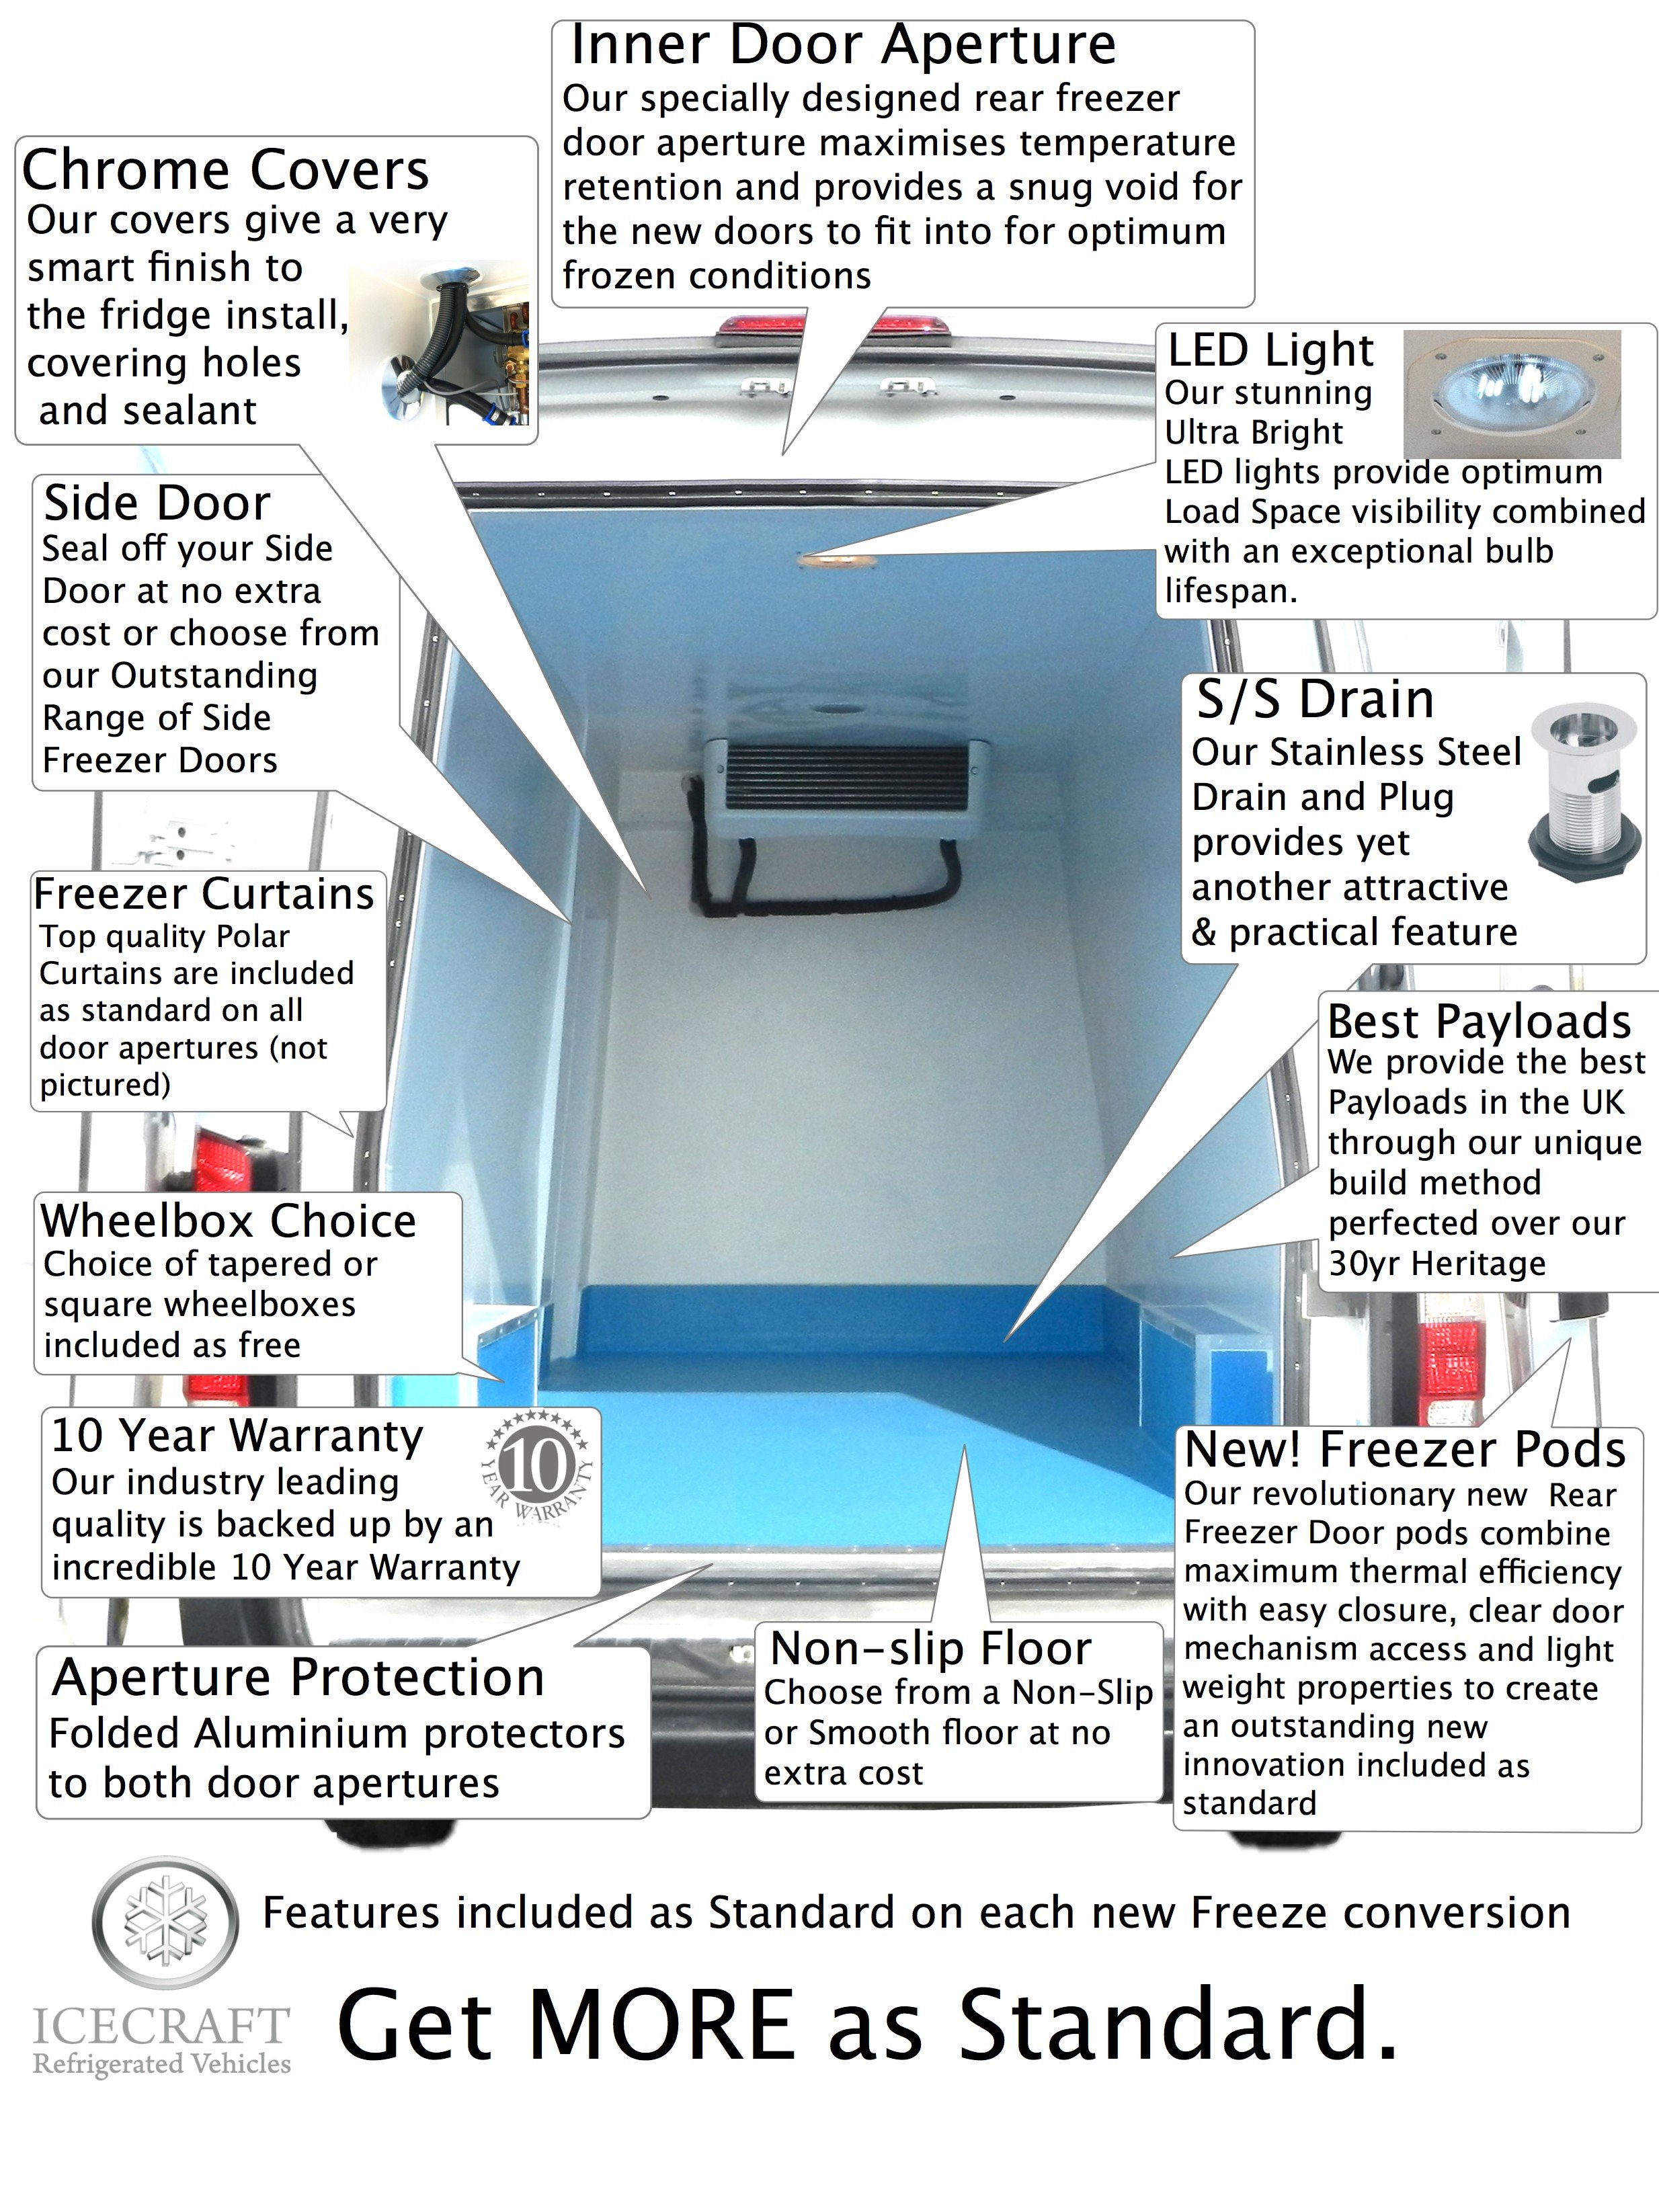 Steel Drain Freezer Curtains Non Slip Floor Pods And More